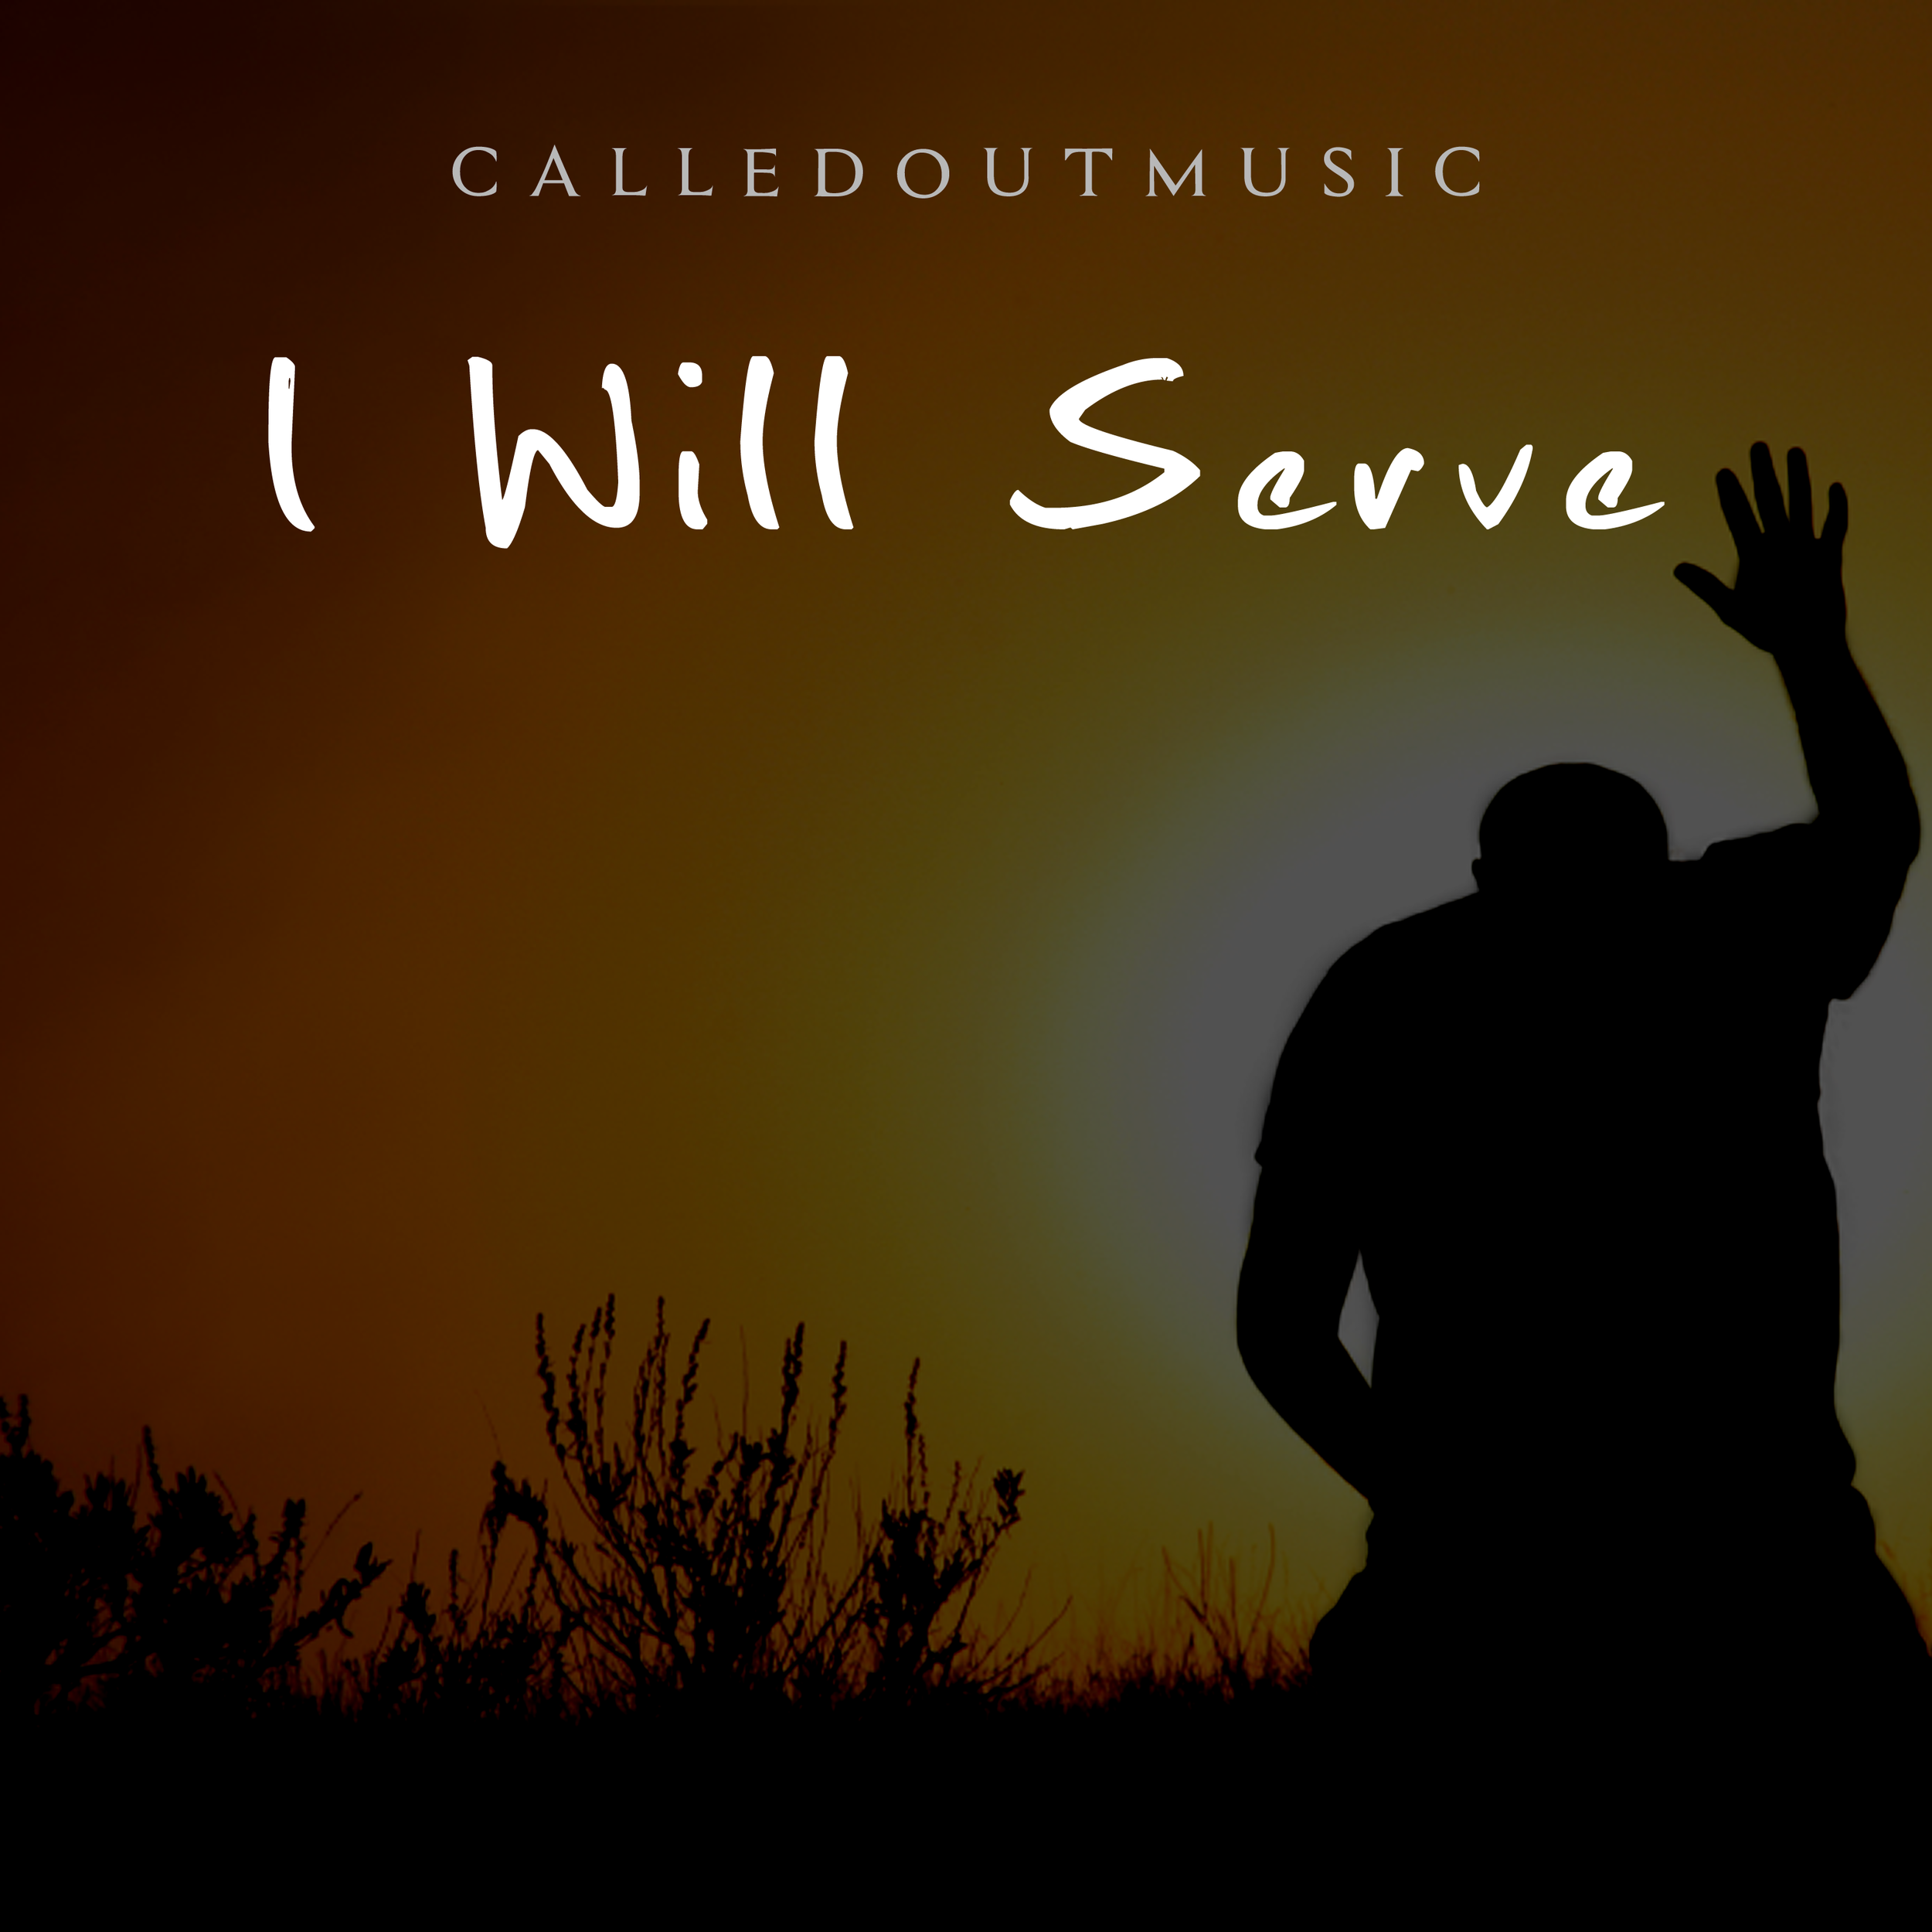 I-Will-Serve-Coverv2.png